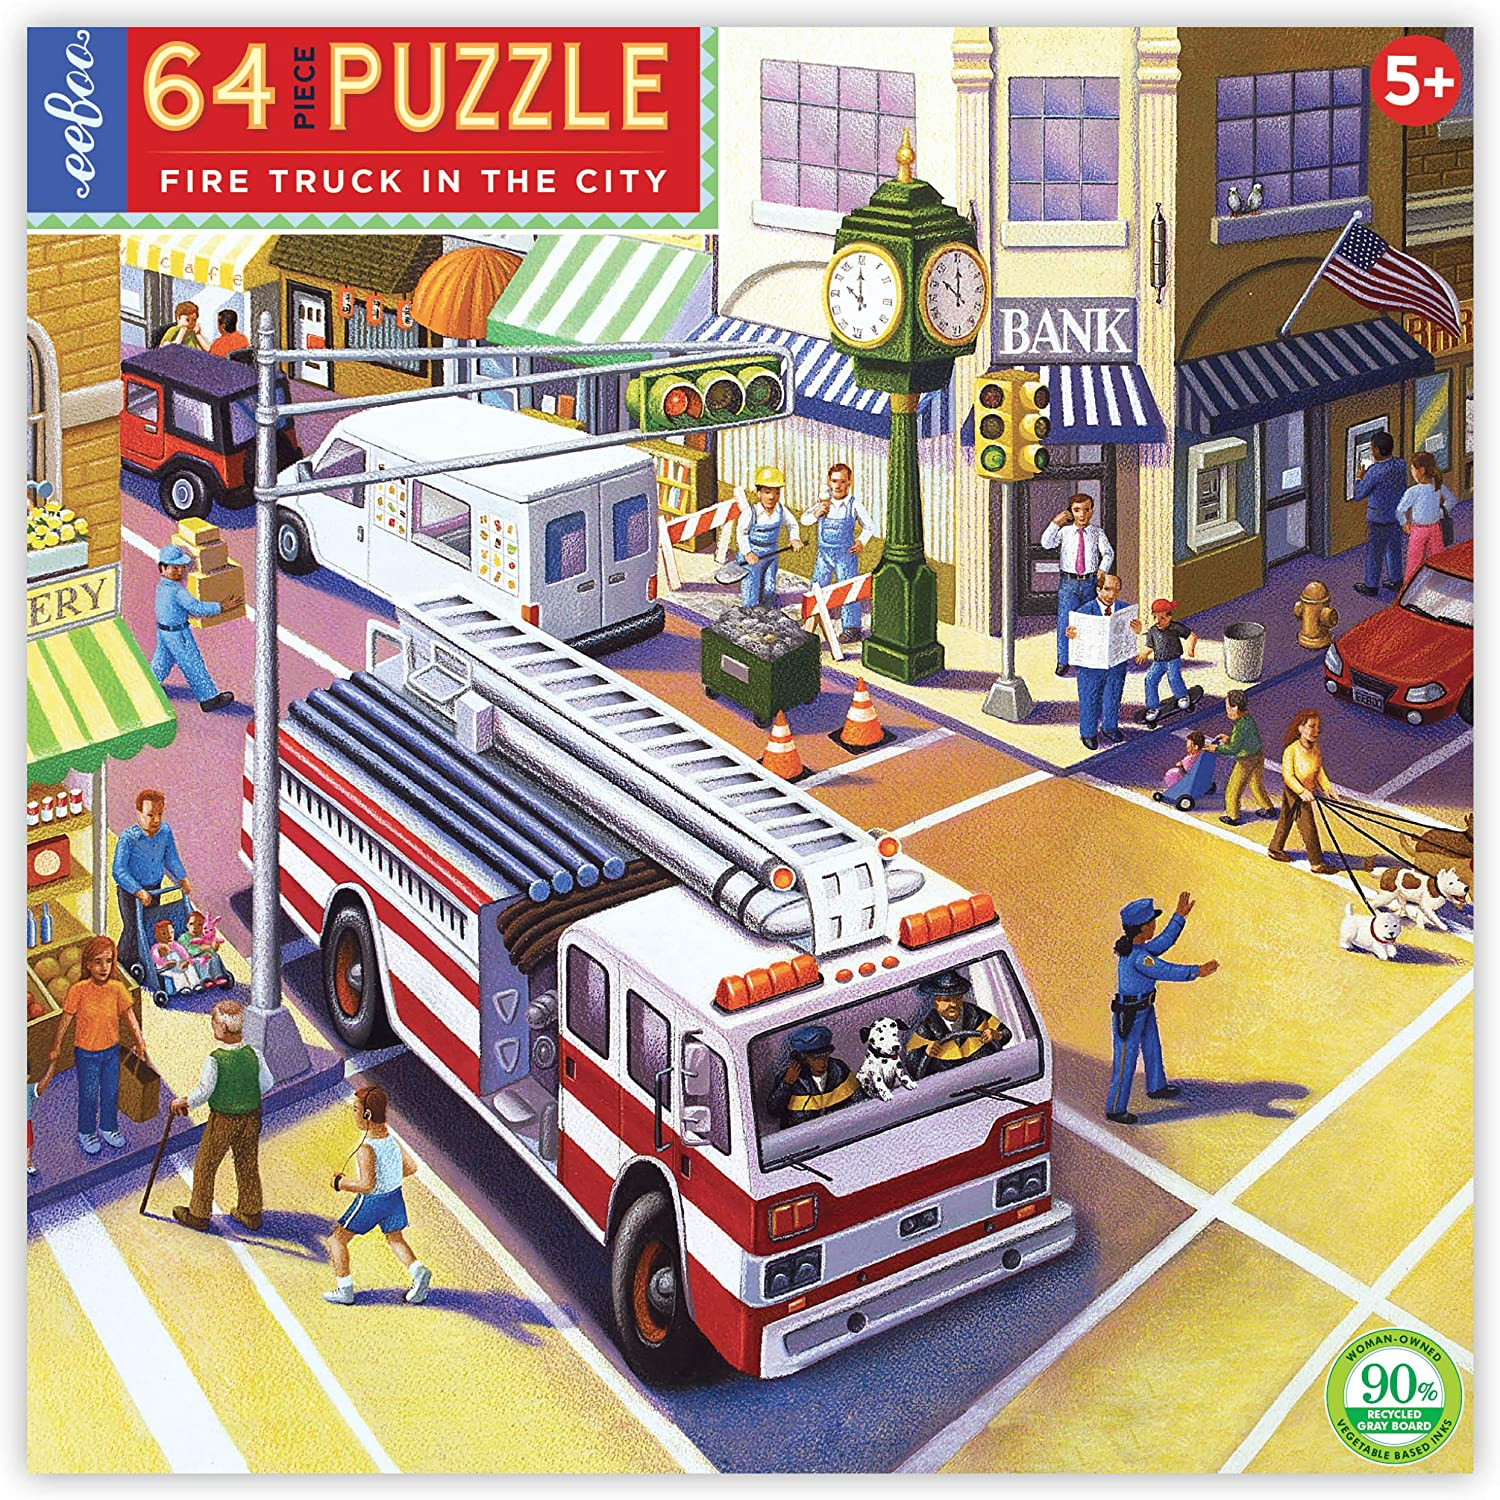 eeBoo Fire Truck in The City Jigsaw Puzzle for Kids Ages 5 Years and Up 64 Pieces